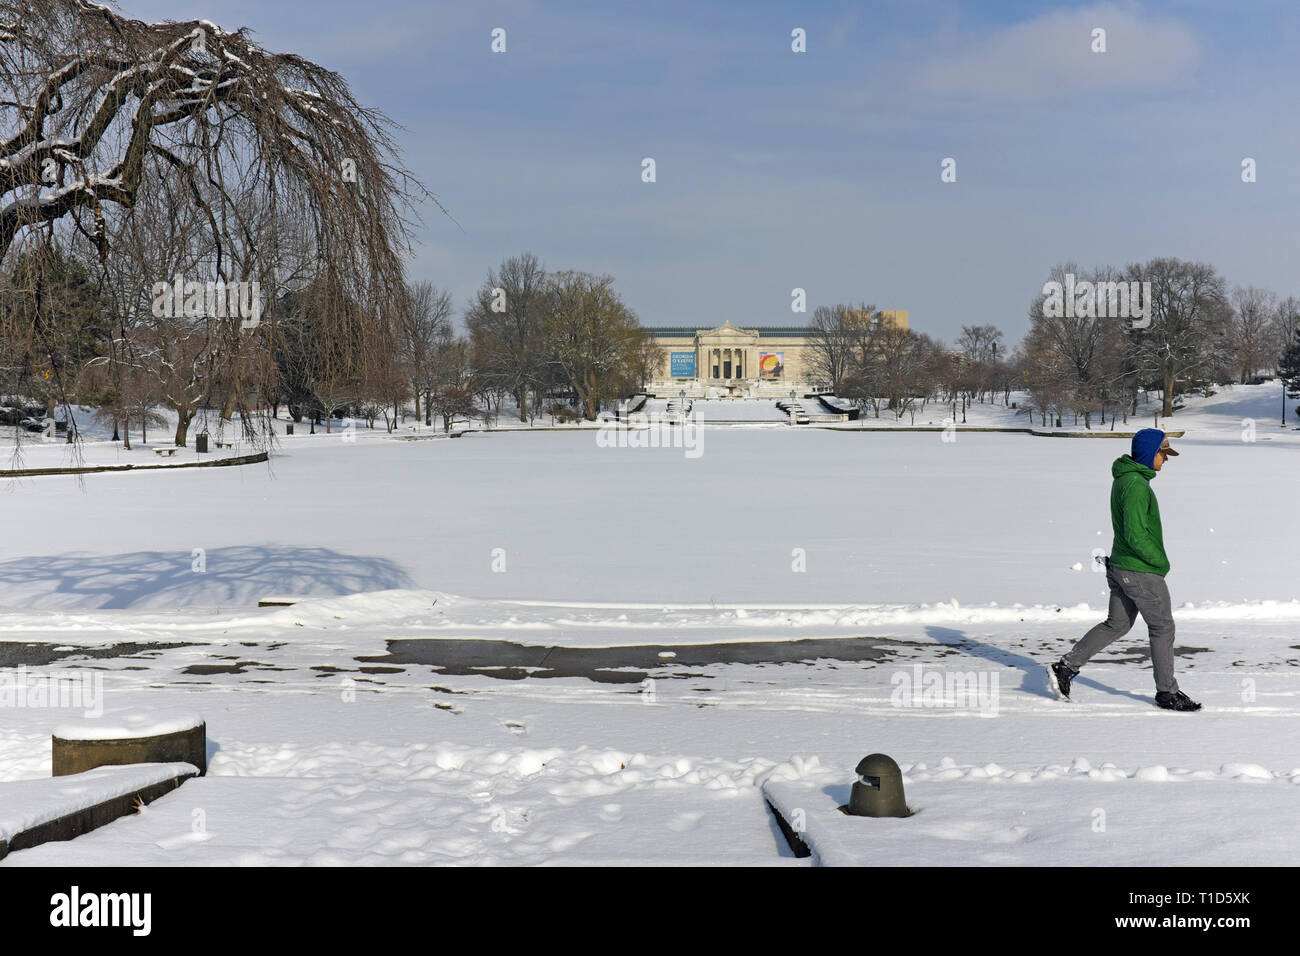 A solitary man walks around the snow-covered pond outside the Cleveland Museum of Art during the winter in Cleveland, Ohio, USA. Stock Photo